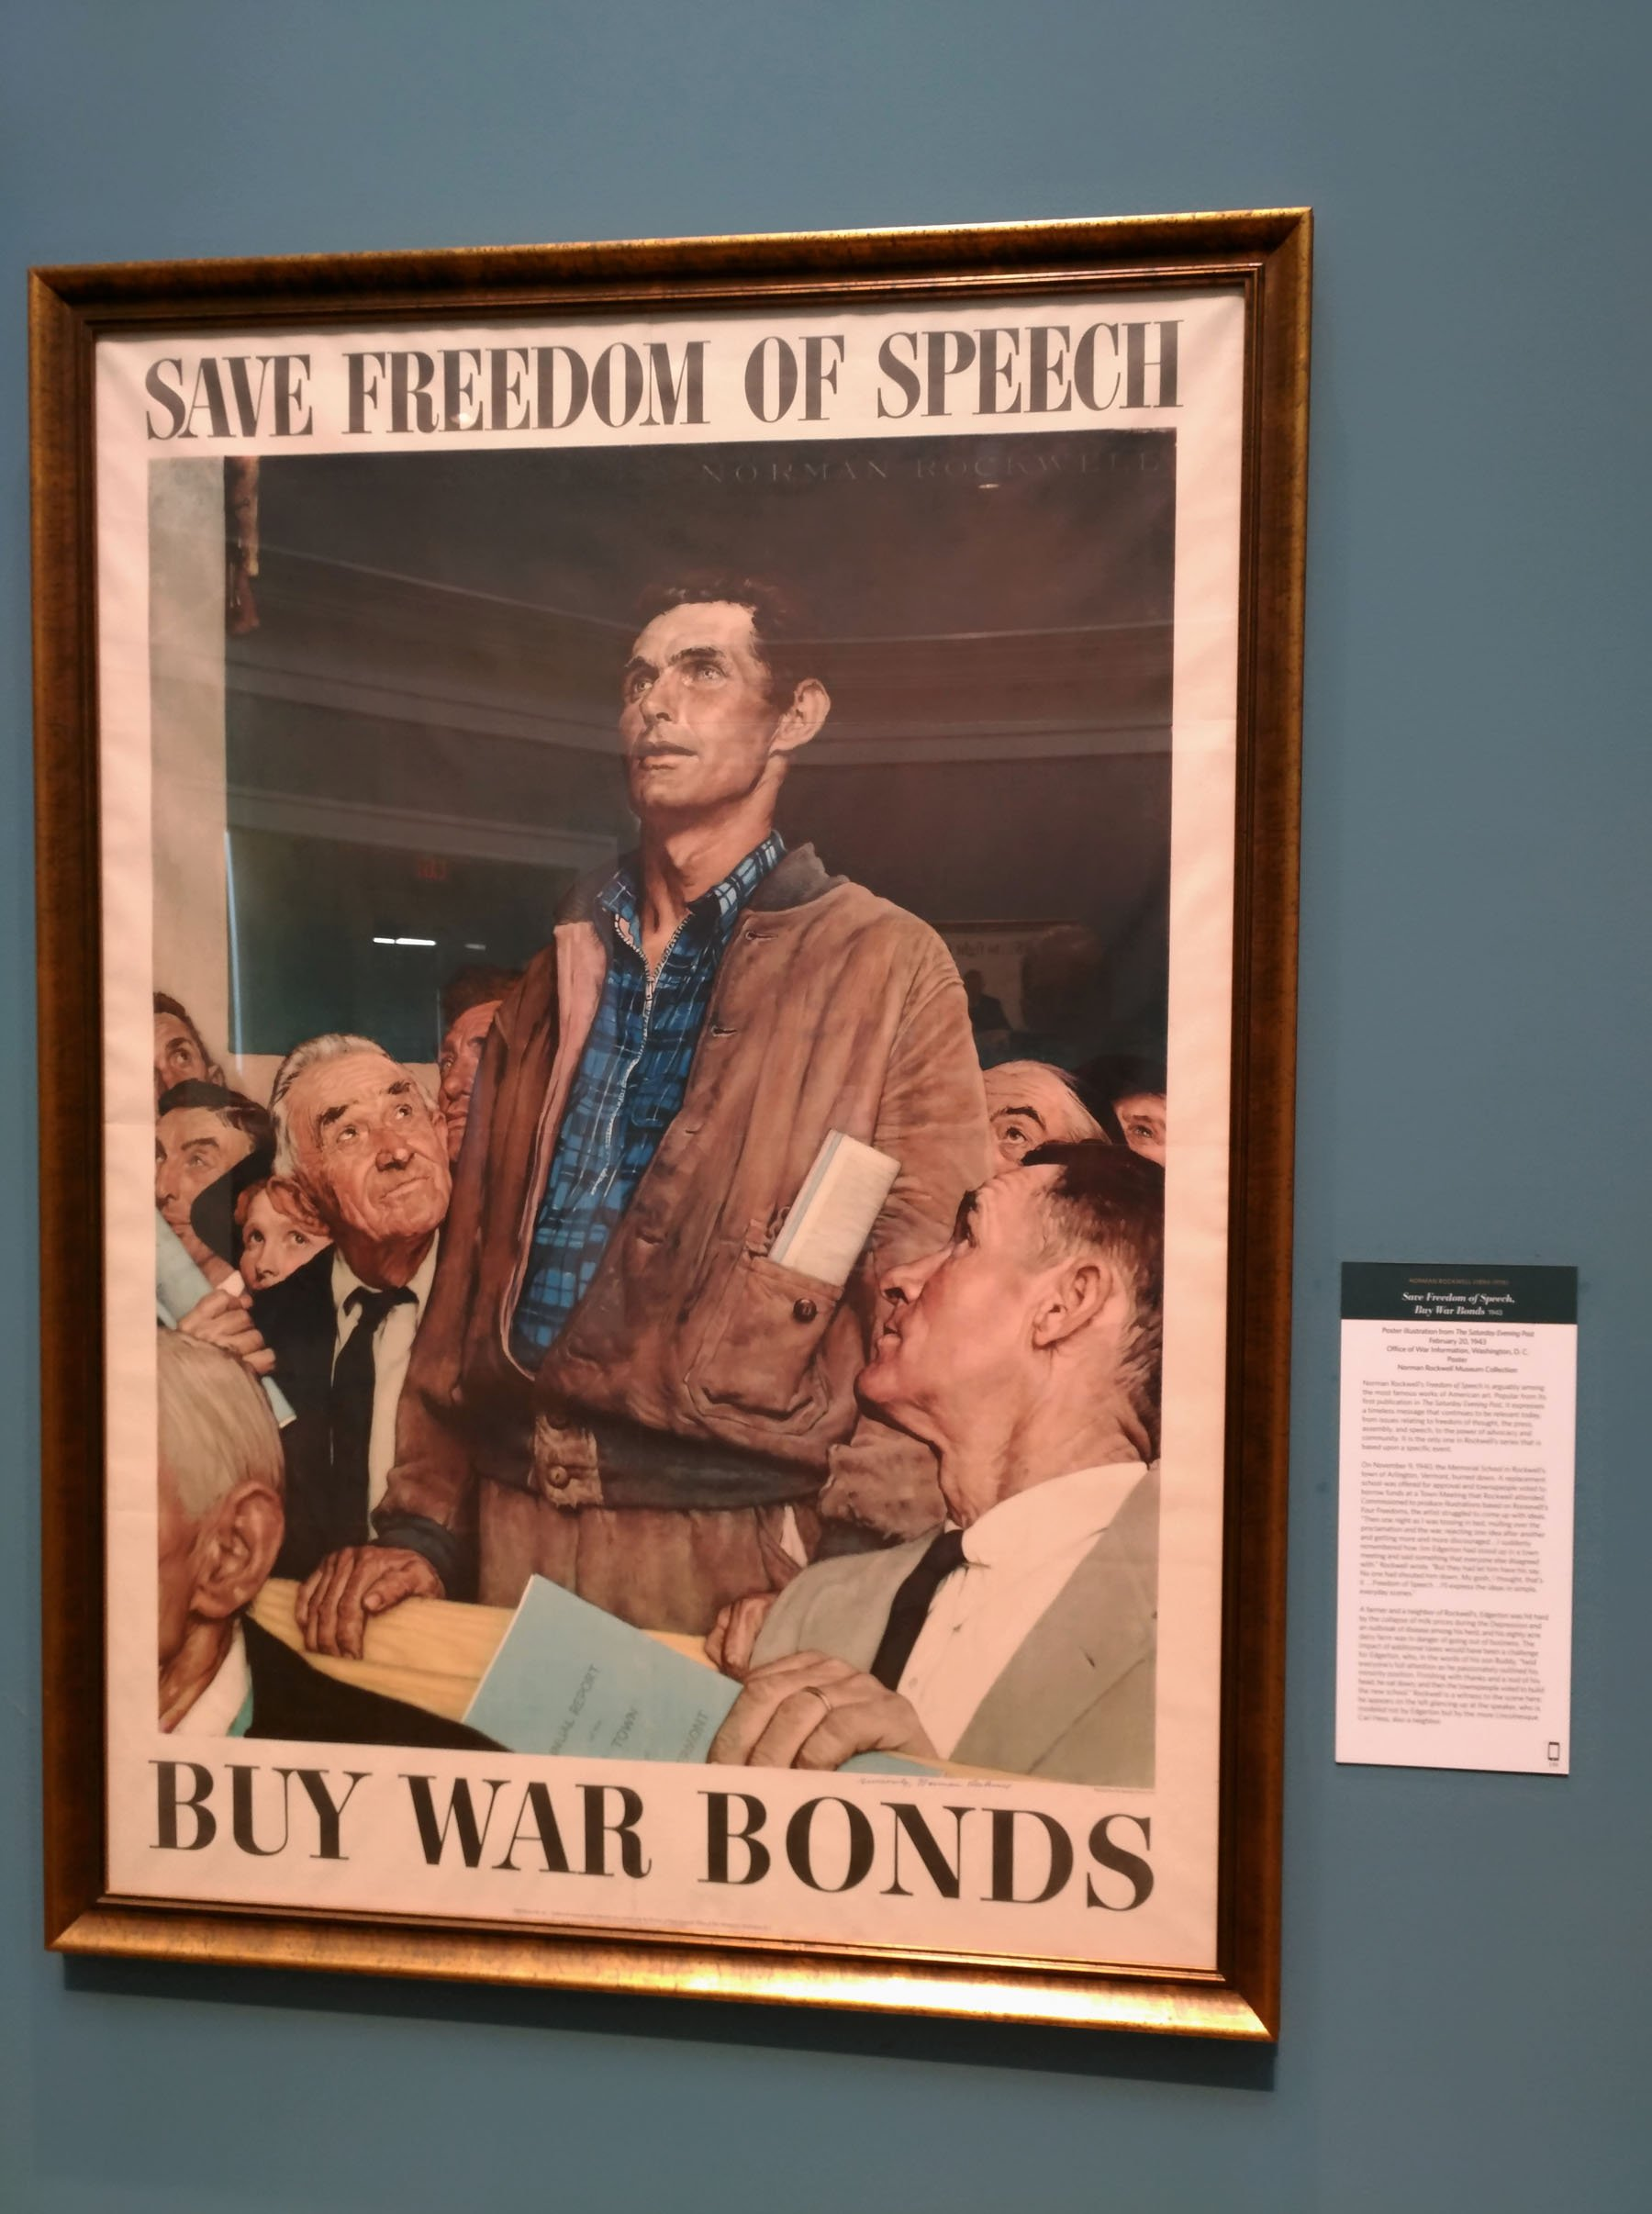 Norman Rockwell's illustration of the Four Freedoms espoused by President Franklin Roosevelt at among his most famous work. (Craig Davis/Craigslegztravels.com)